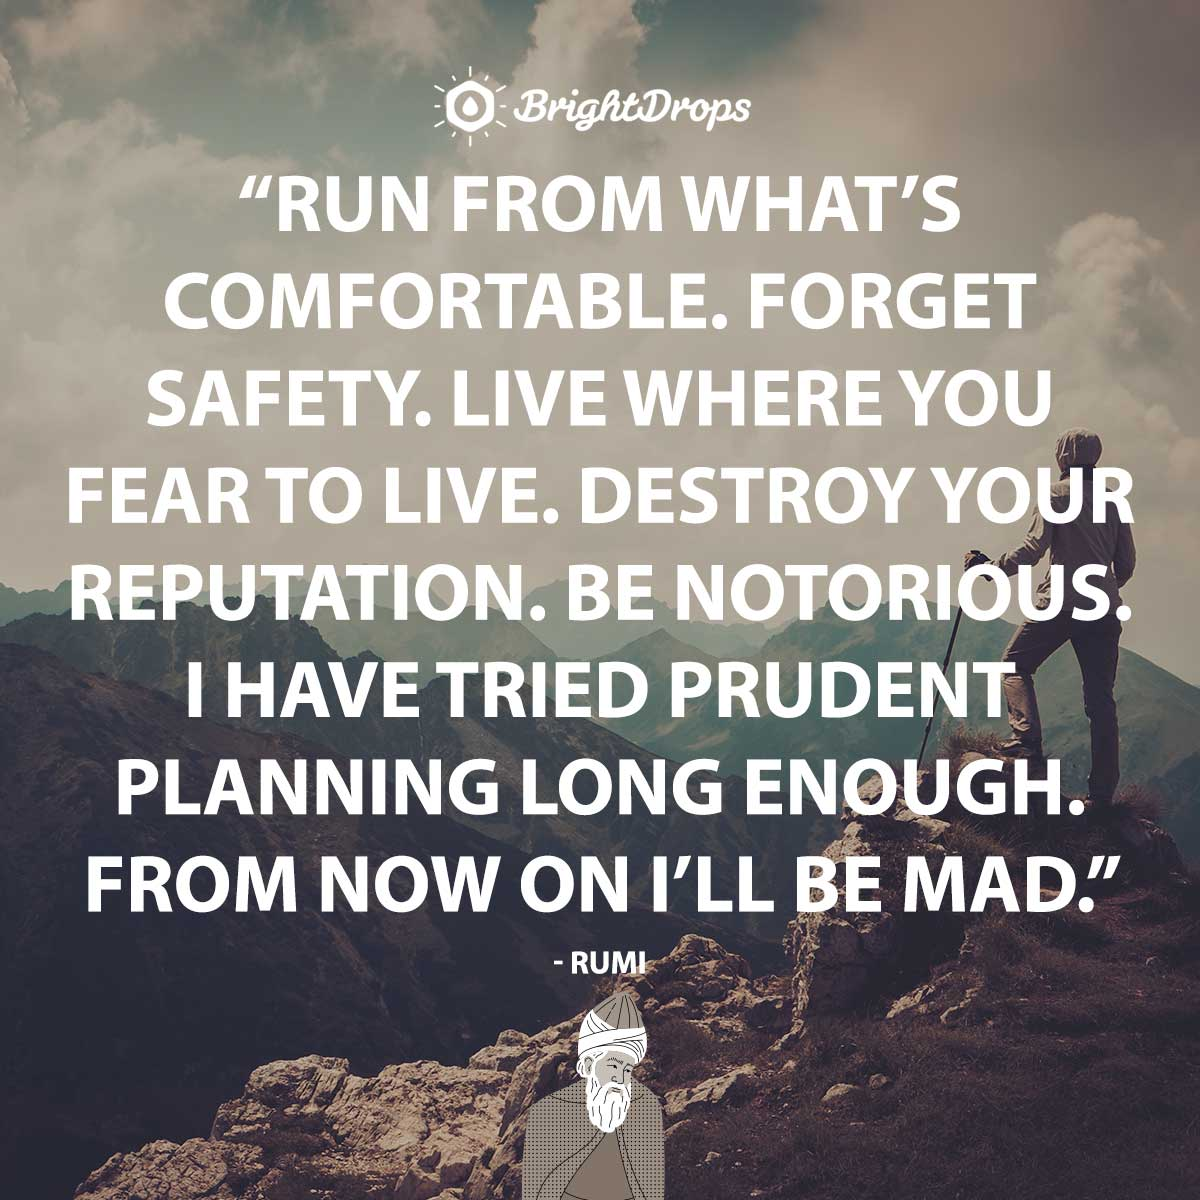 Run from what's comfortable. Forget safety. Live where you fear to live. Destroy your reputation. Be notorious. I have tried prudent planning long enough. From now on I'll be mad. - Rumi - Rumi